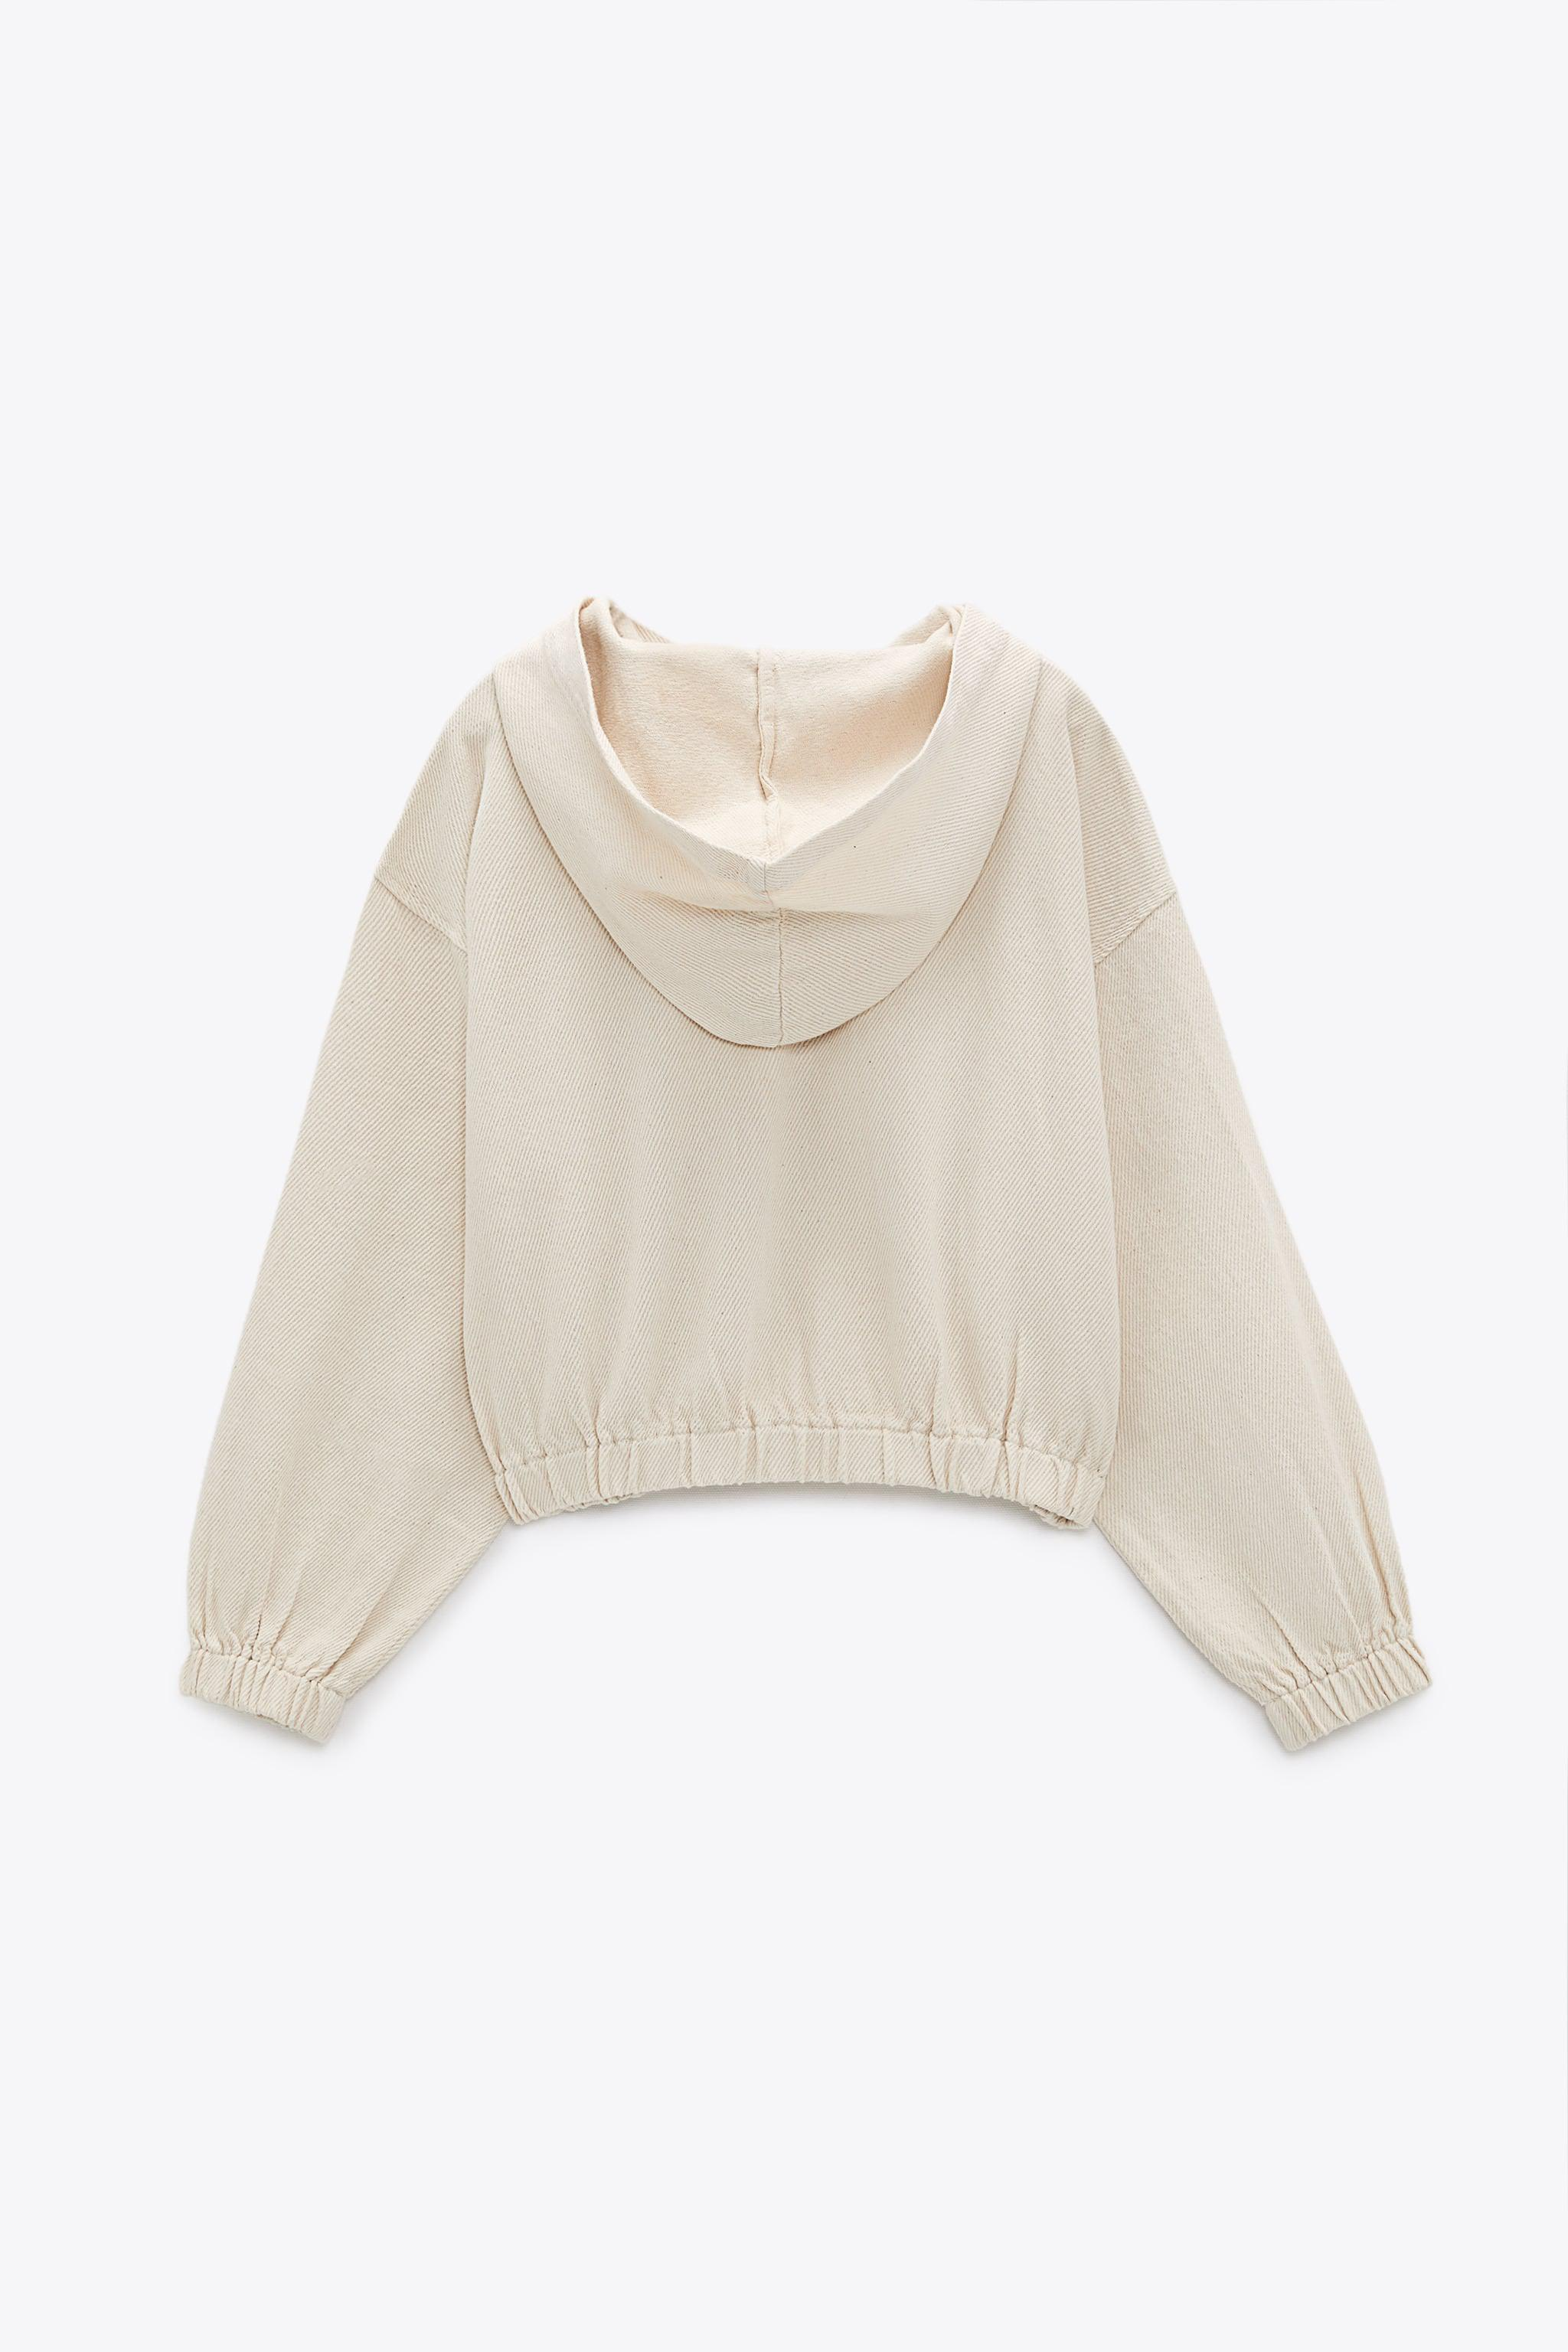 HOODED TWILL TOP 9